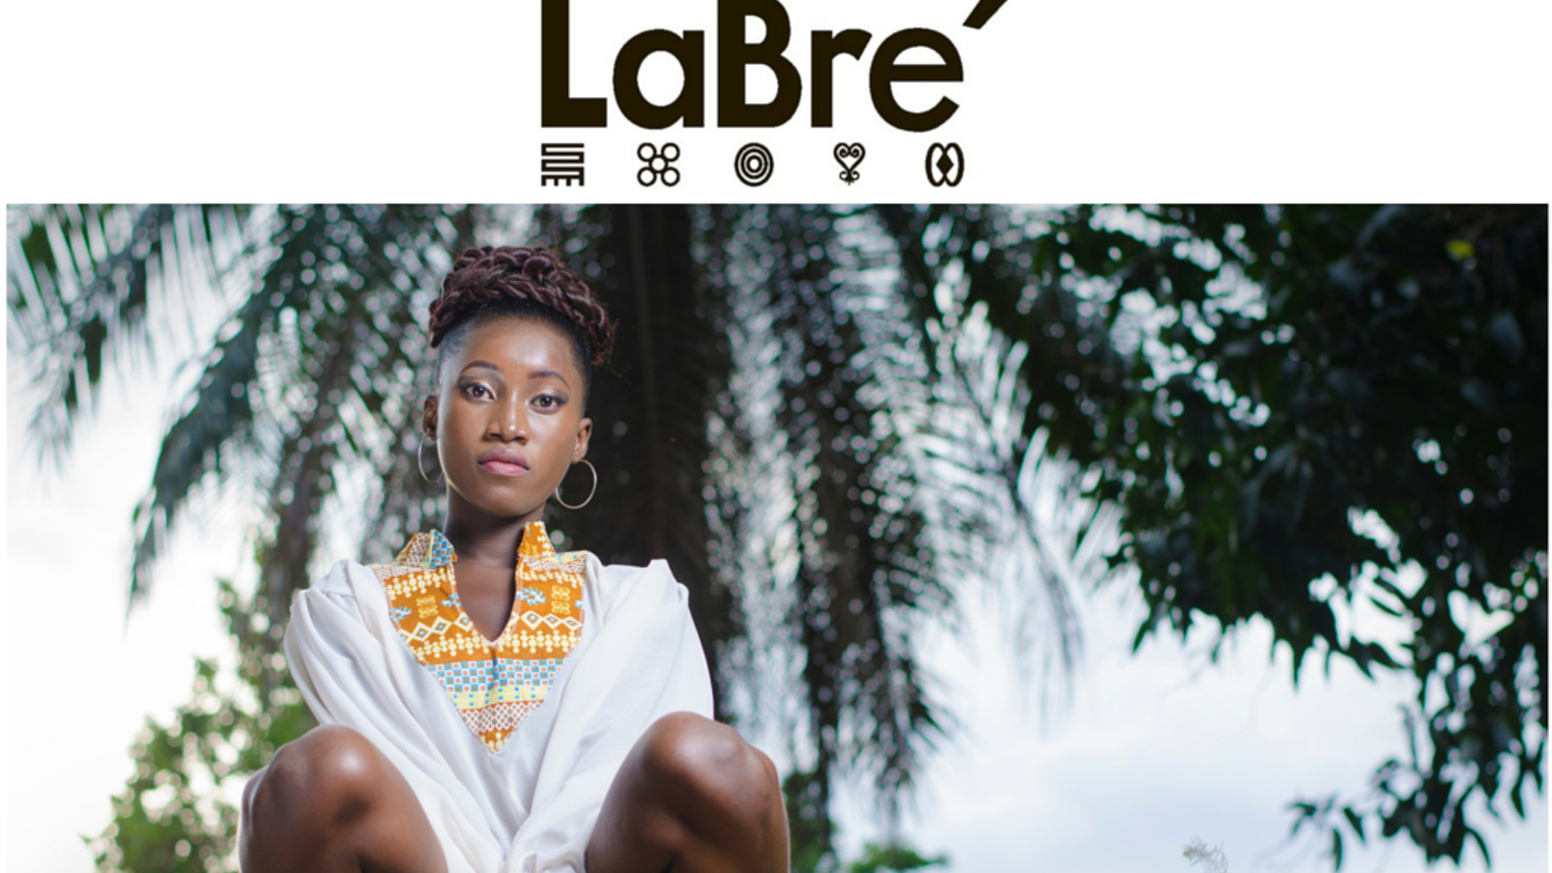 A unique, stylish collection of African inspired apparel that embodies West African and diasporic aesthetic.